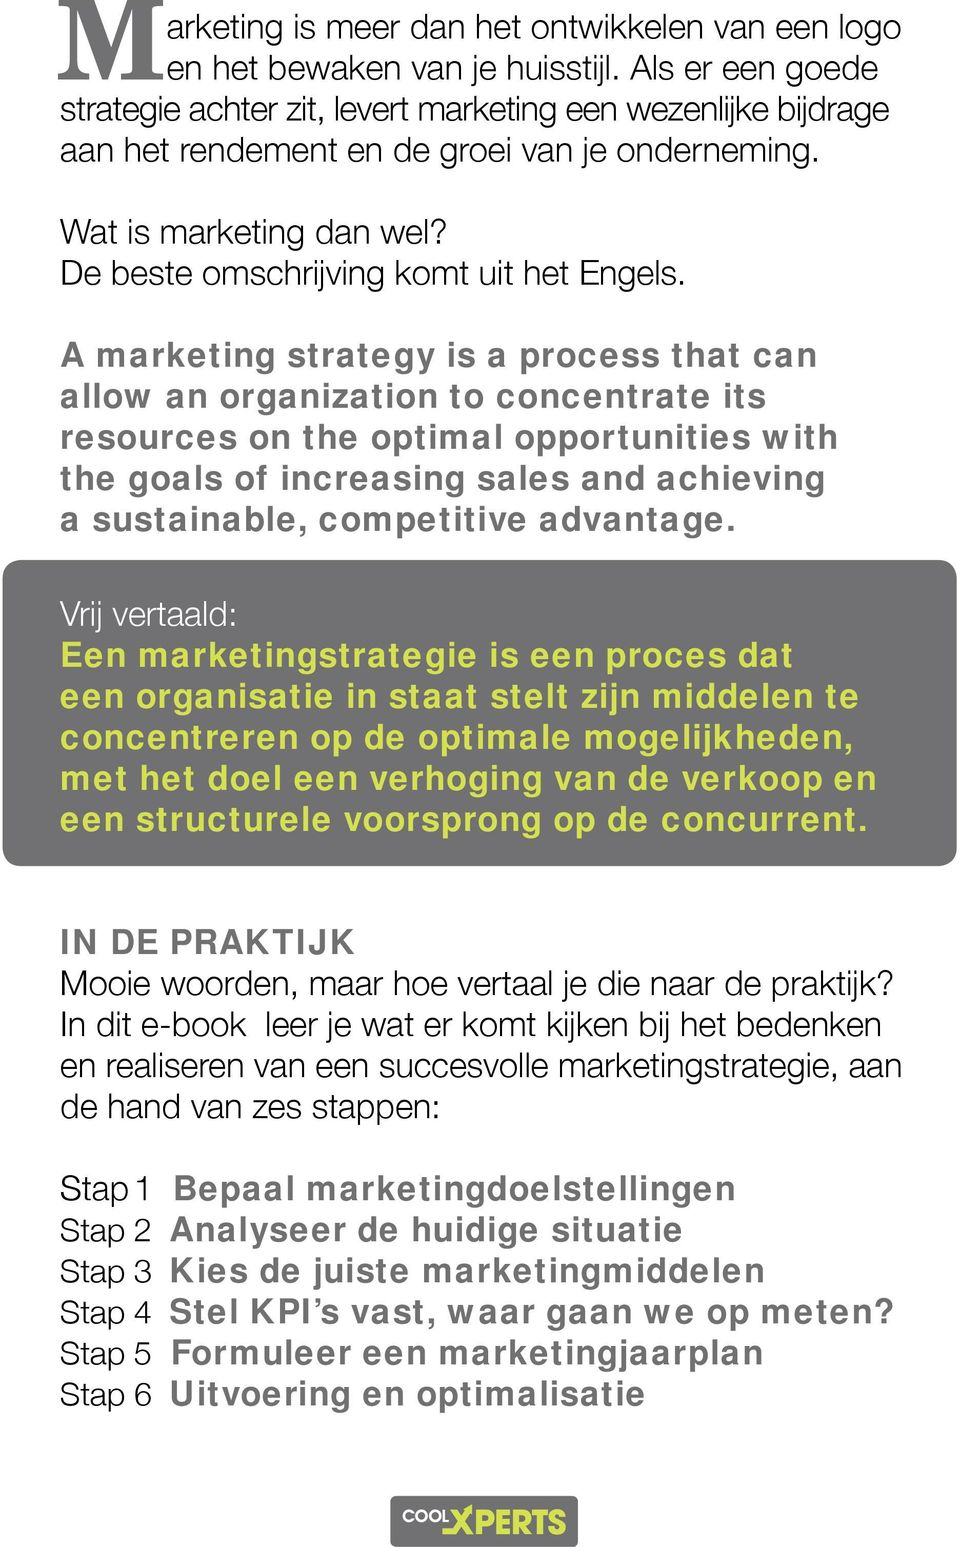 A marketing strategy is a process that can allow an organization to concentrate its resources on the optimal opportunities with the goals of increasing sales and achieving a sustainable, competitive